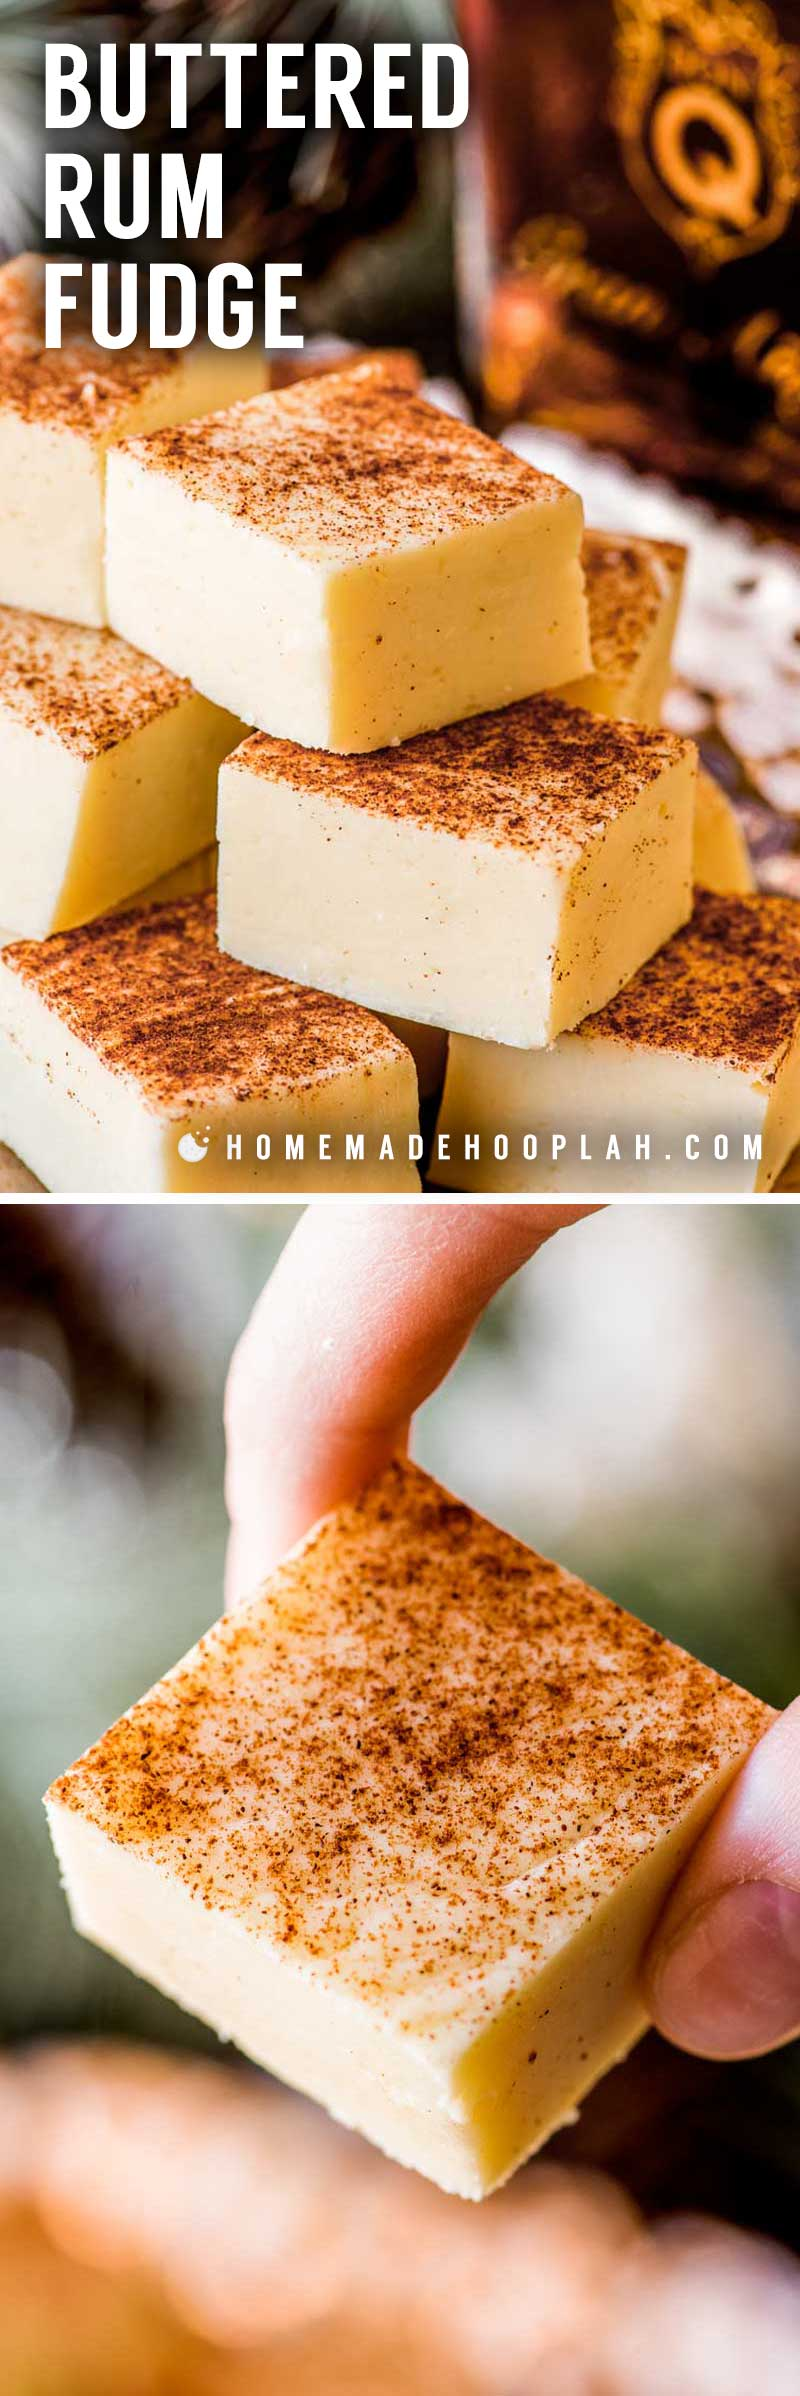 Buttered Rum Fudge! This white chocolate fudge is flavored with Don Q Gran Añejo, giving this rum fudge a taste of a classic hot buttered rum. Perfect for gifting! | #ad #Exceptional #DonQRum HomemadeHooplah.com